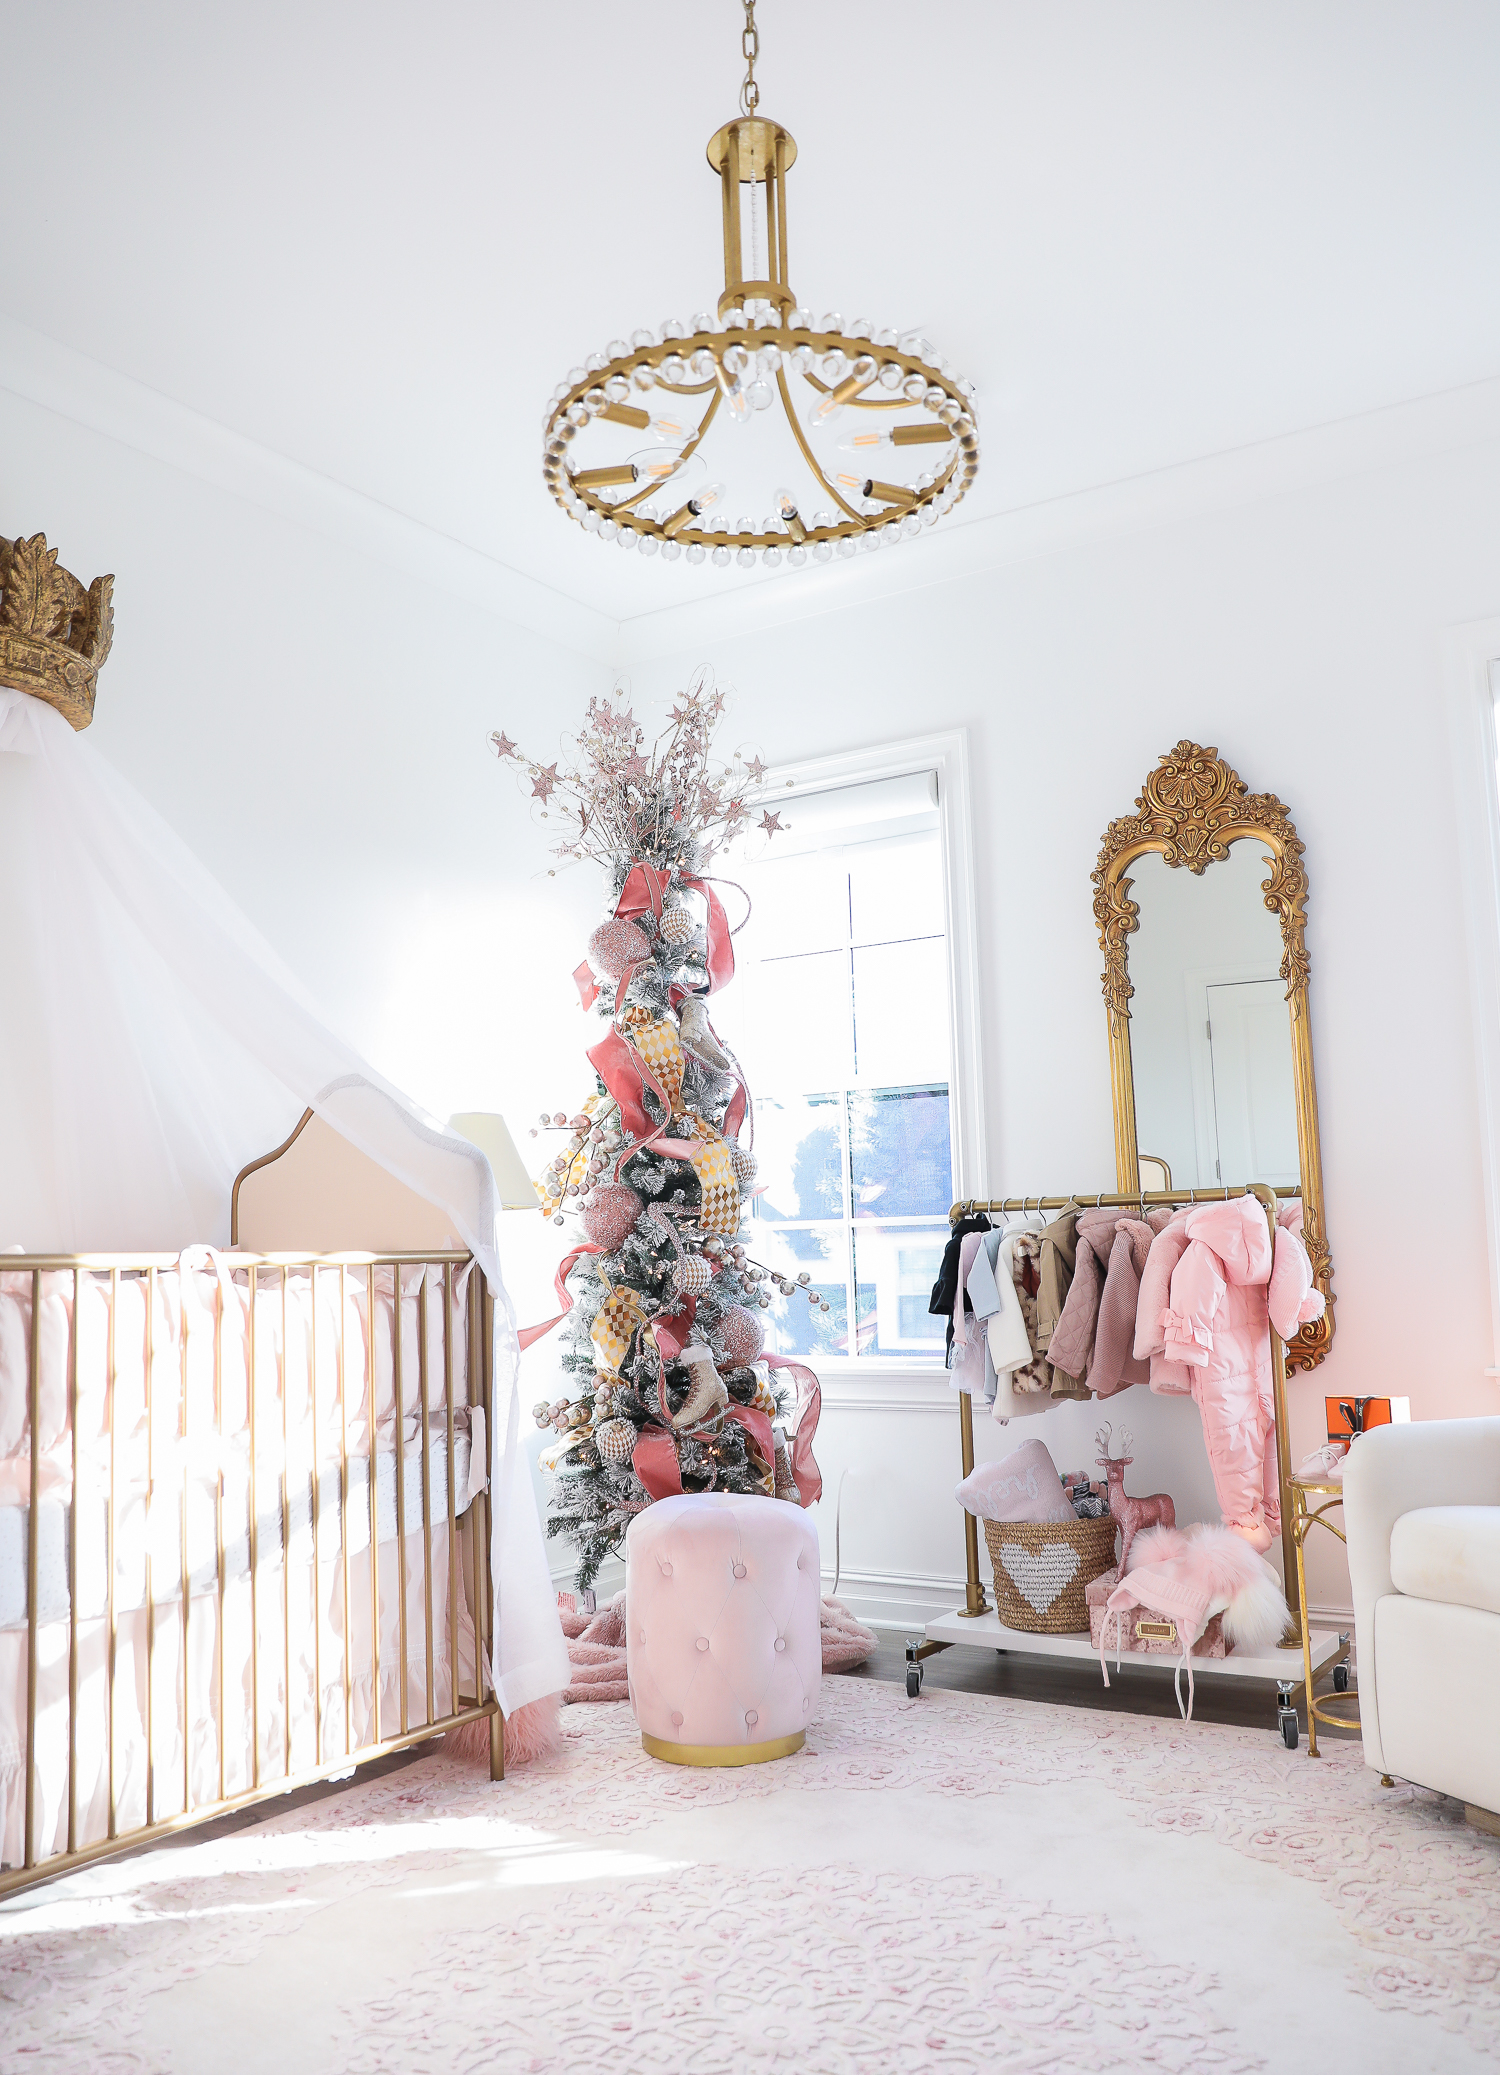 baby girl nursery inspiration christmas pinterest, baby girl nursery christmas tree, emily gemma, gold baby garment rack, the sweetest thing blog-2 |  Sophia's Baby Girl Nursery at Christmastime by popular Oklahoma life and style blog, The Sweetest Thing: image of a girl nursery decorated with a Nordstrom Nolene Sequin Party Dress, Pottery Barn Kids Merced Glider & Ottoman, Wayfair Piper 2-in-1 Convertible Crib, RH Baby & Child NEW RUFFLE APPLIQUÉD ORGANIC VOILE NURSERY BEDDING COLLECTION, Wayfair Fontanne Oriental Pink/White Area Rug, Overstock Clover 8-light Aged Brass Chandelier, Horchow Sophia Rectangular Dressing Mirror, Etsy ShopAndisList Childrens standard rack, Pottery Barn Kids Raffia Heart Baskets, RH Baby & Child GILT DEMILUNE CANOPY BED CROWN, Walmart Holiday Time Pre-Lit Snow-Flocked Colorado Artificial Christmas Tree, 7', White Lights, Target Wondershop Glitter Deer Decorative Figurine Blush, T.J. Maxx pink velvet storage box, Wayfair Arnulfo 6 Drawer Double Dresser, Nordstrom Nursery Essential Gift Set, Nordstrom Sophie la Girafe Teething Toy, Glamboxes GLAMstand Hair Accessory Organizer, Serena & Lily Jenn Thatcher painting, Pottery Barn Kids Luxe Chamois Changing Pad, Crate & Kids Acrylic Shelf Bookcase, RH Baby and Child ANTIQUED GILT WOOD LETTER, Wayfair Luxe Solid Faux Fur Throw Pillow, Gap Toddler Cable-Knit Pom Beanie, Maisonette SteamLine Luggage *Exclusive* Vanity Case, Smocked Auctions NUTCRACKER SMOCKED BISHOP PINK GINGHAM, Nordstrom Ugg Jesse Bow Fluff Bootie, Overstock Safavieh Couture Carnation Round Tufted Ottoman, Pottery Barn Kids Blush Velvet Nursery Storage, and Nordstrom Chenille Blanket.